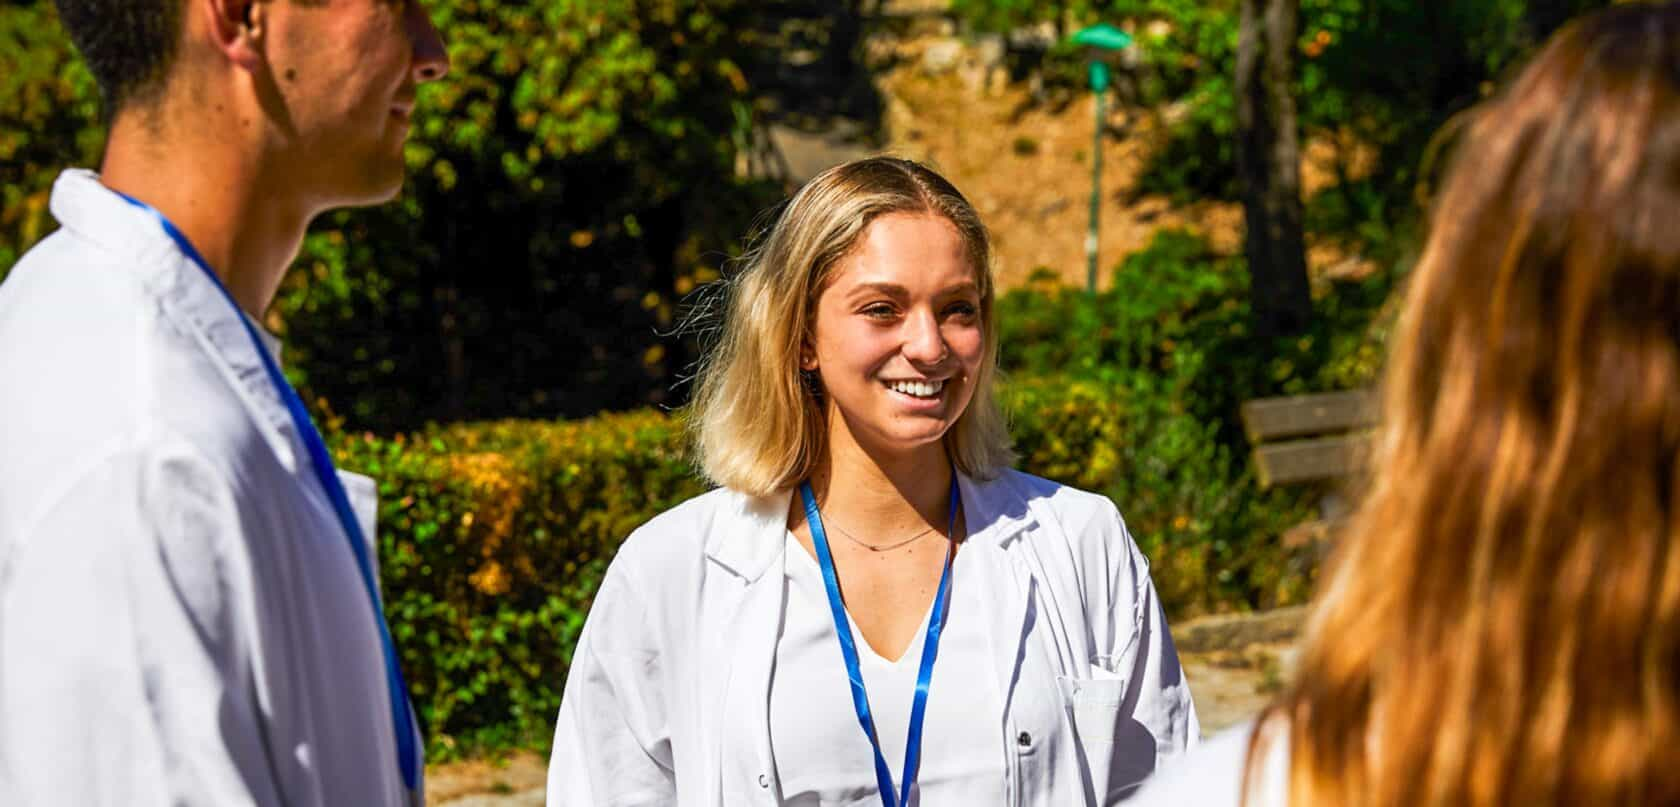 An Atlantis student smiling outside of the hospital.